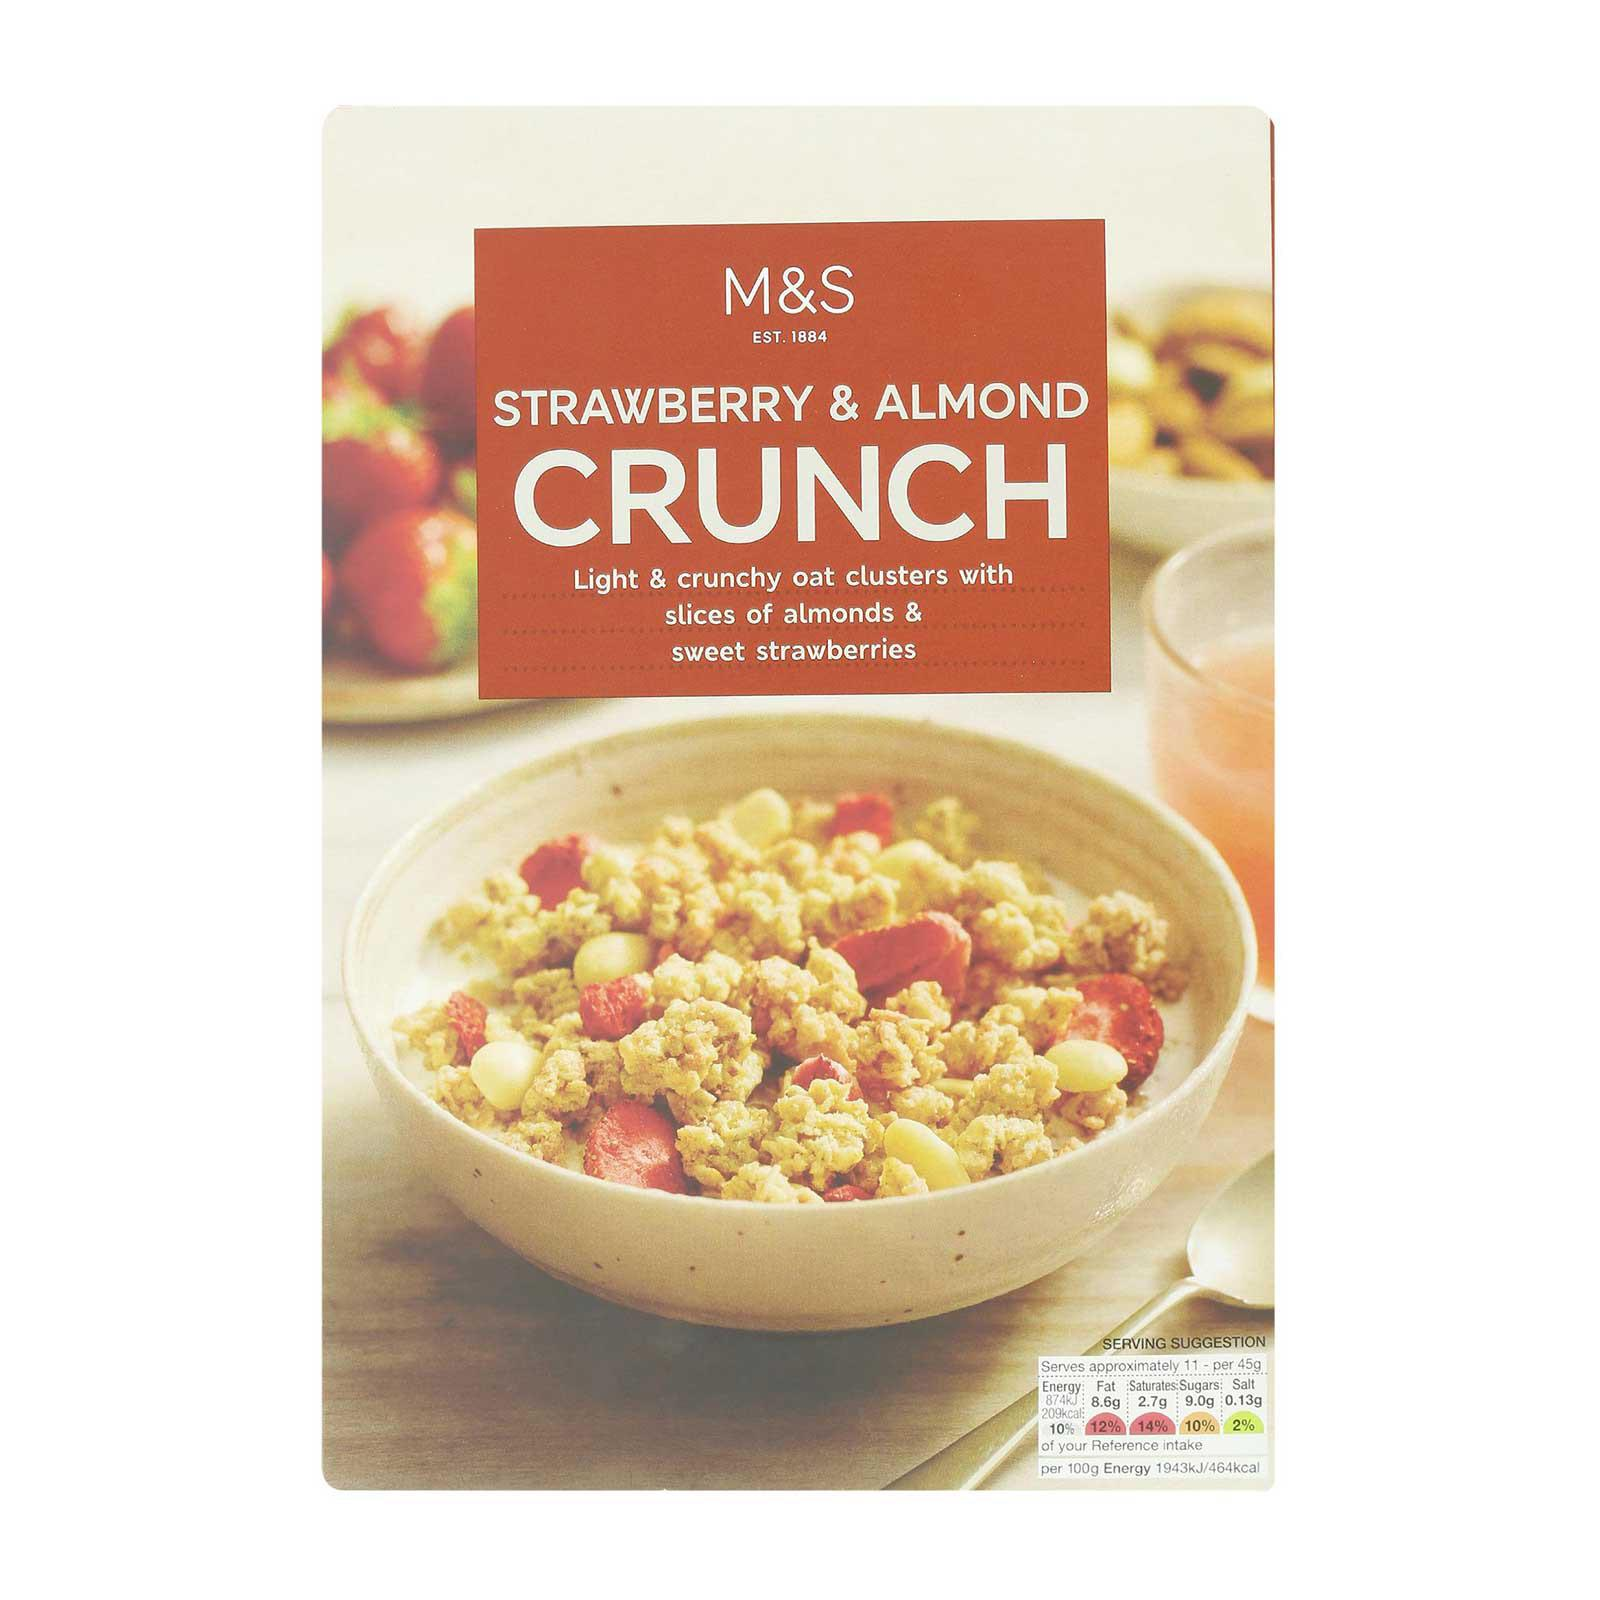 Marks & Spencer Strawberry and Almond Crunch